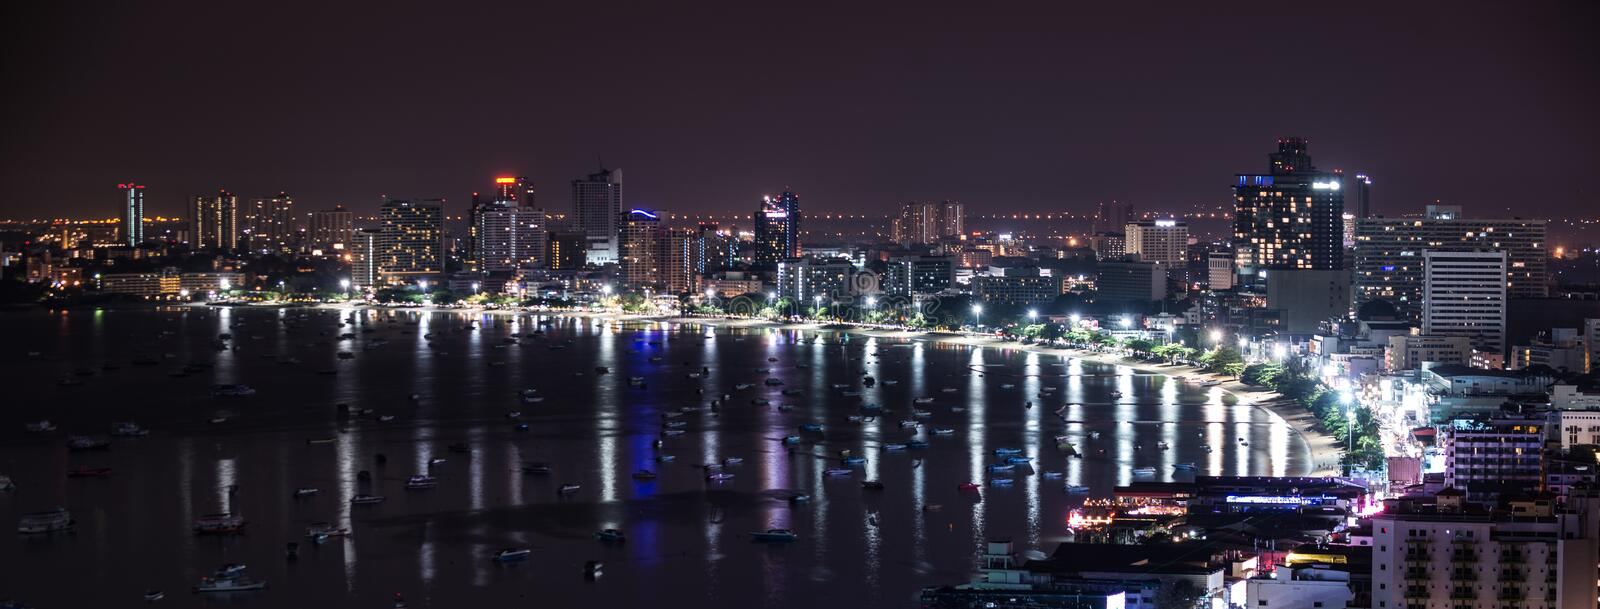 Pattaya City and beach at night view from Pratumnak Hill overlook royalty free stock photography